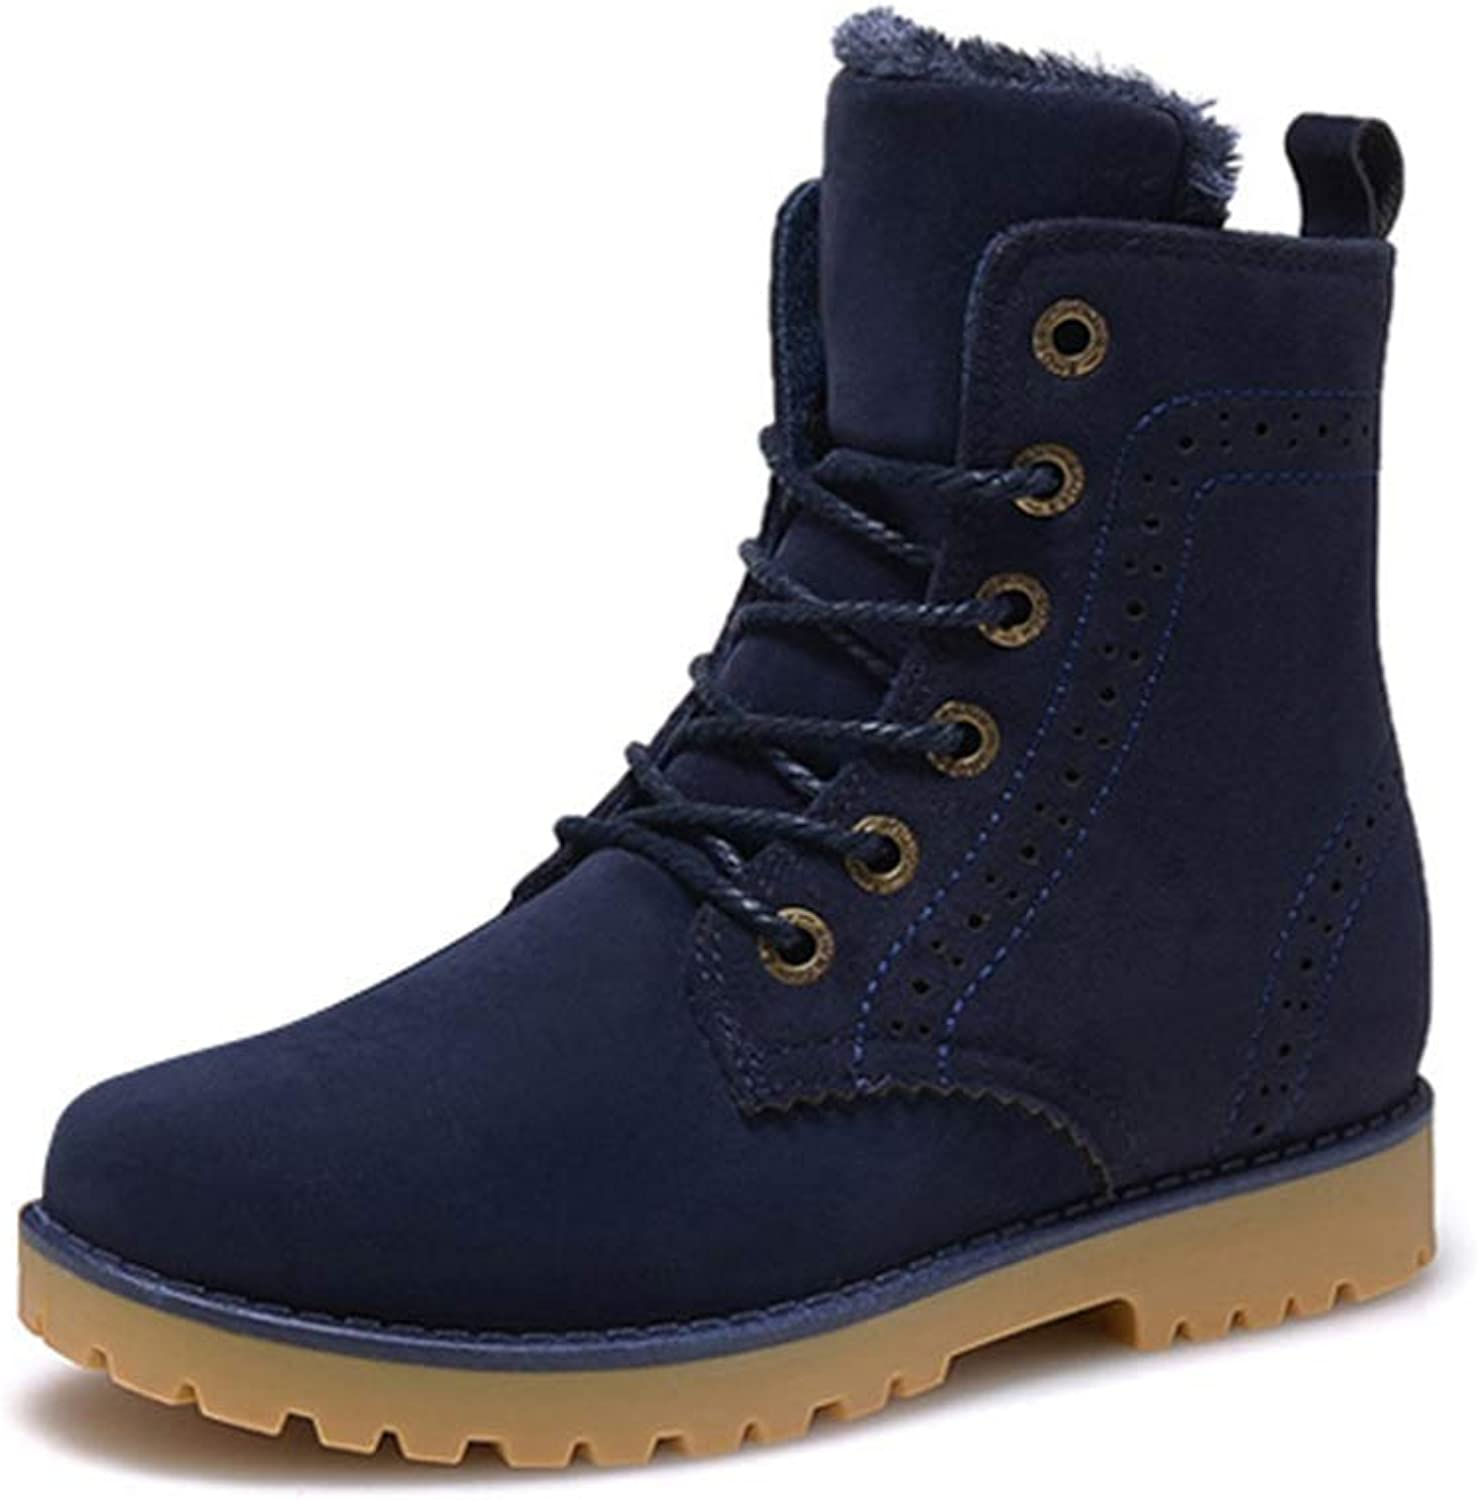 ZHRUI Men Boots Winter Snow Warm Casual shoes Leather Plush Fur Fashion Unisex Boots (color   Navy, Size   8.5 UK)